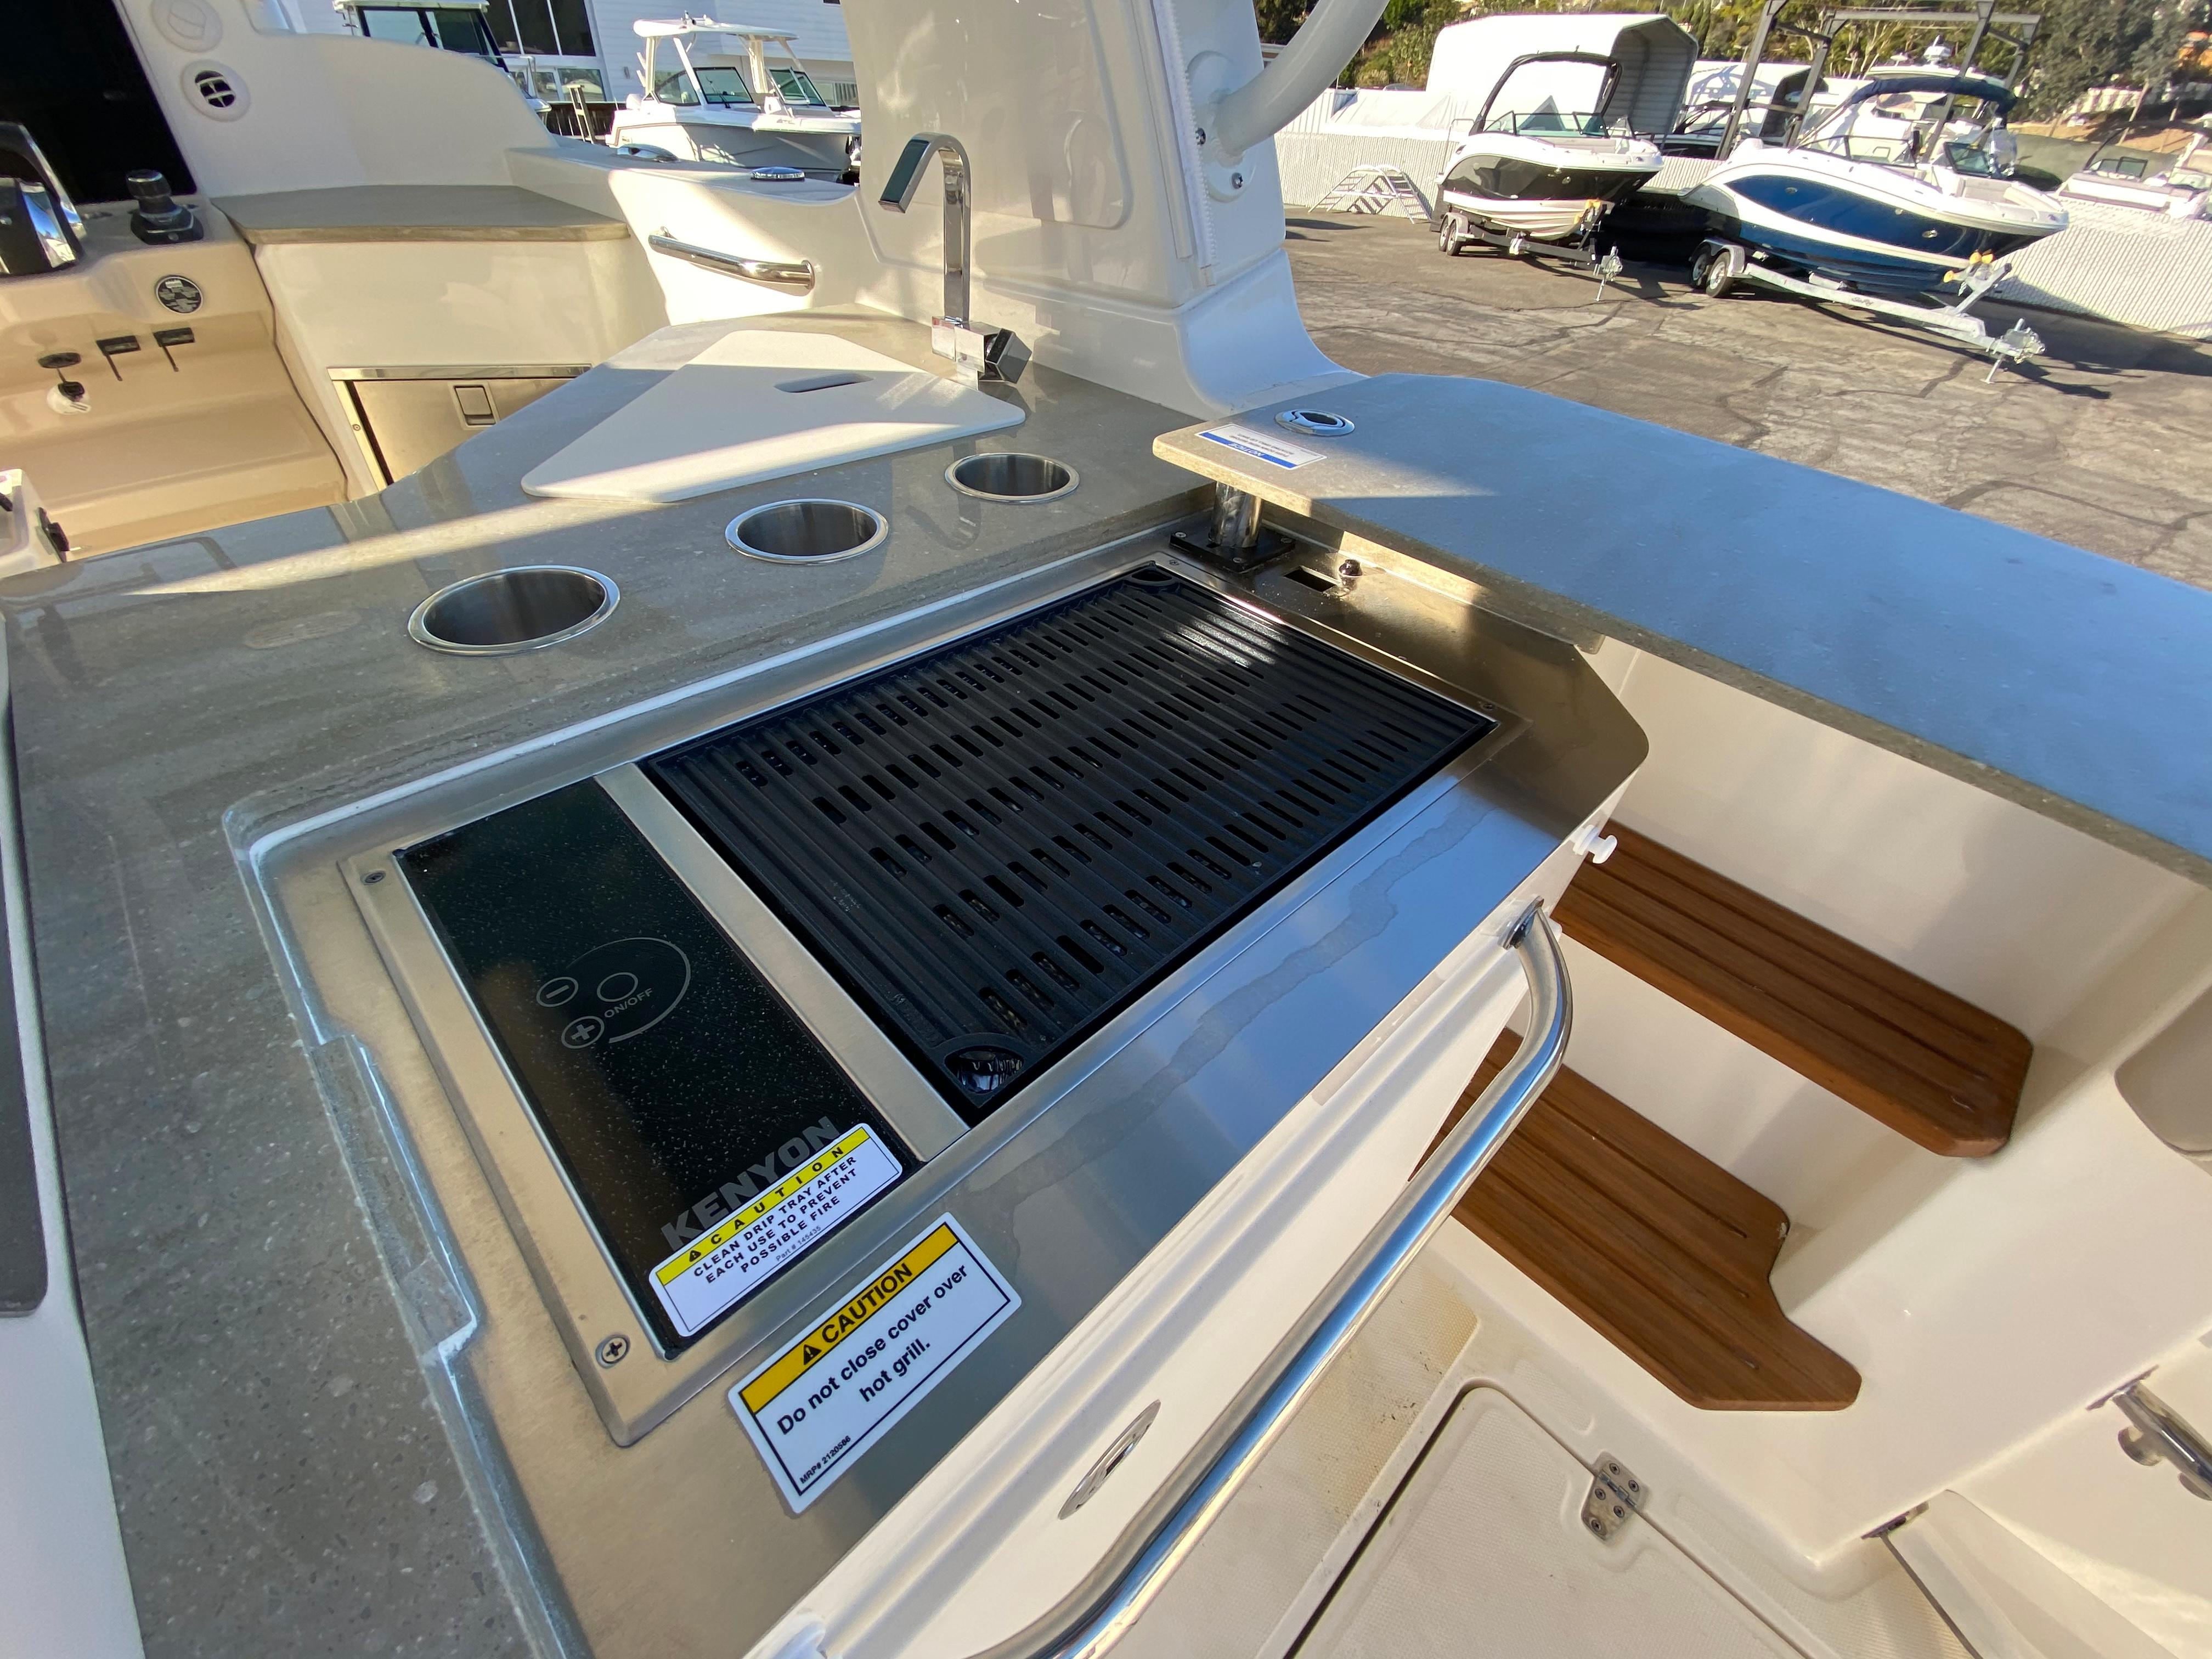 2021 Boston Whaler 350 Realm #BW1158K inventory image at Sun Country Coastal in Newport Beach